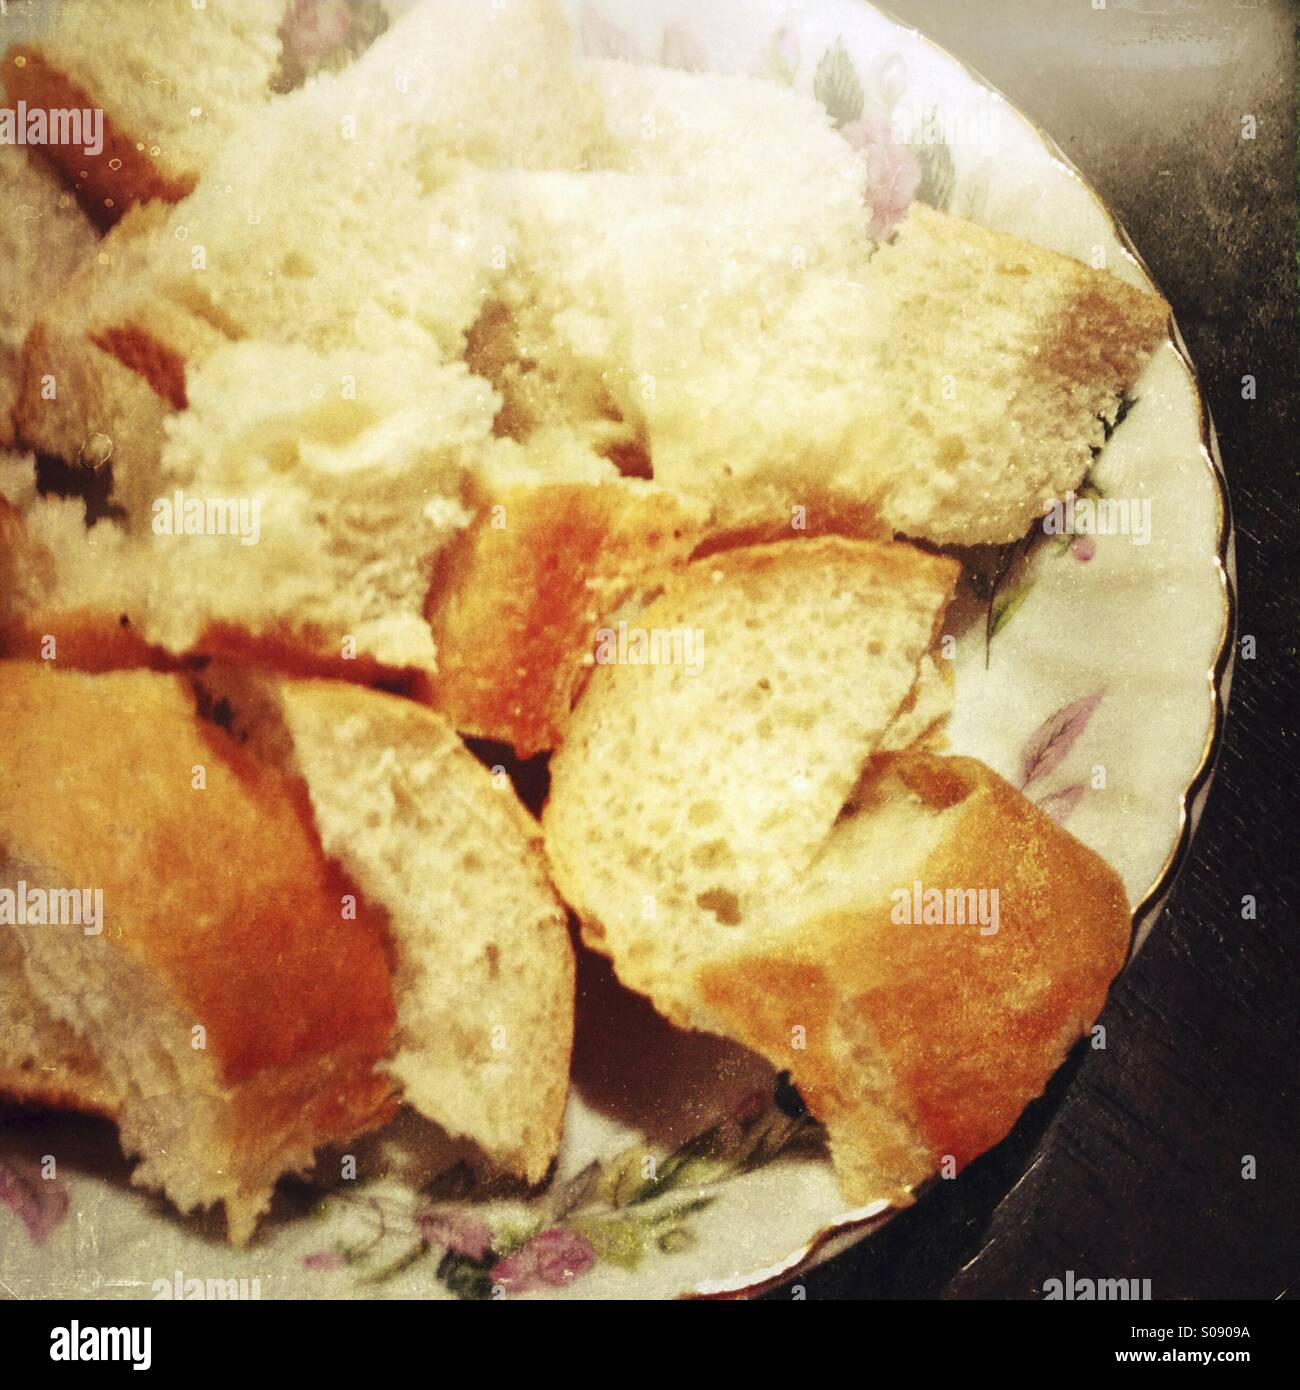 Pieces of bread on a plate. - Stock Image